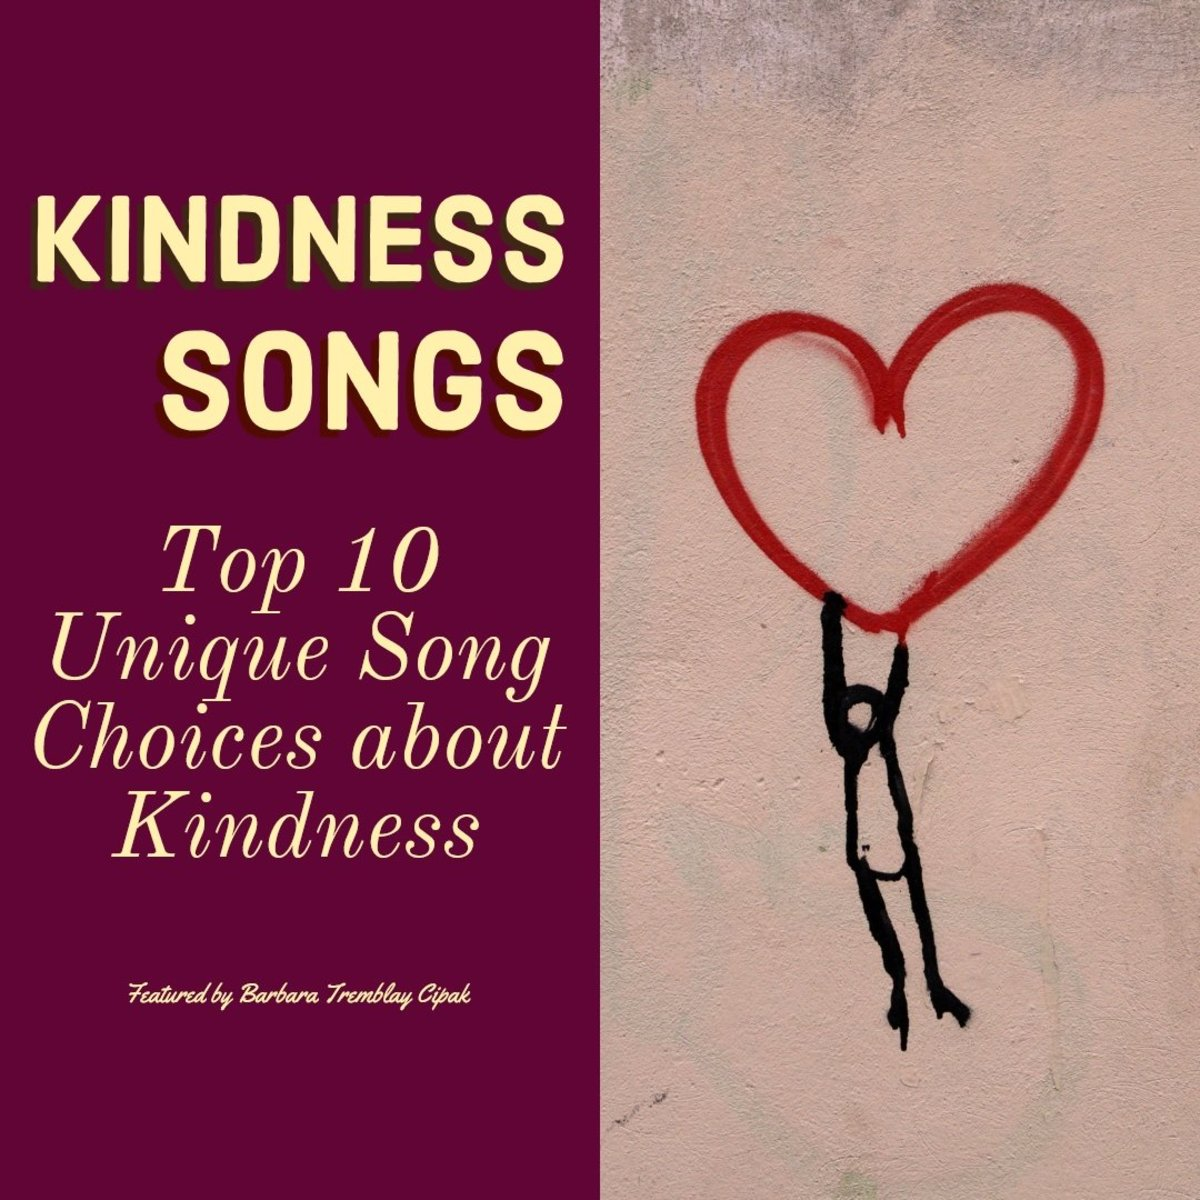 Top 10 Unique Song Choices about Kindness